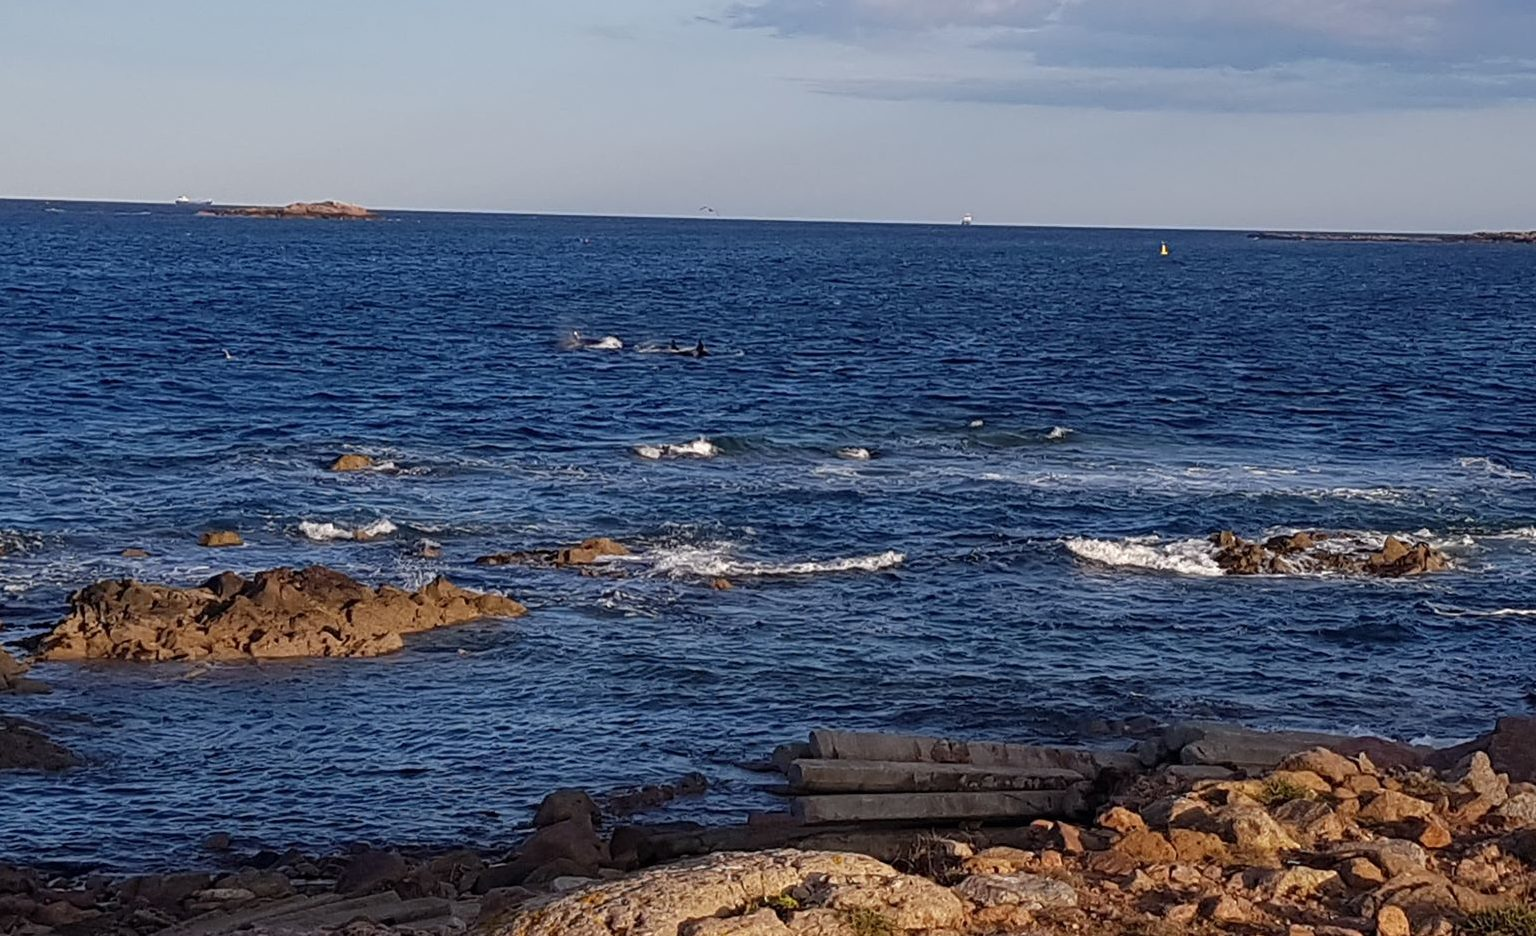 While rock-pooling near Peterhead Harbour marine biology student Chloe Fraser spotted three orcas